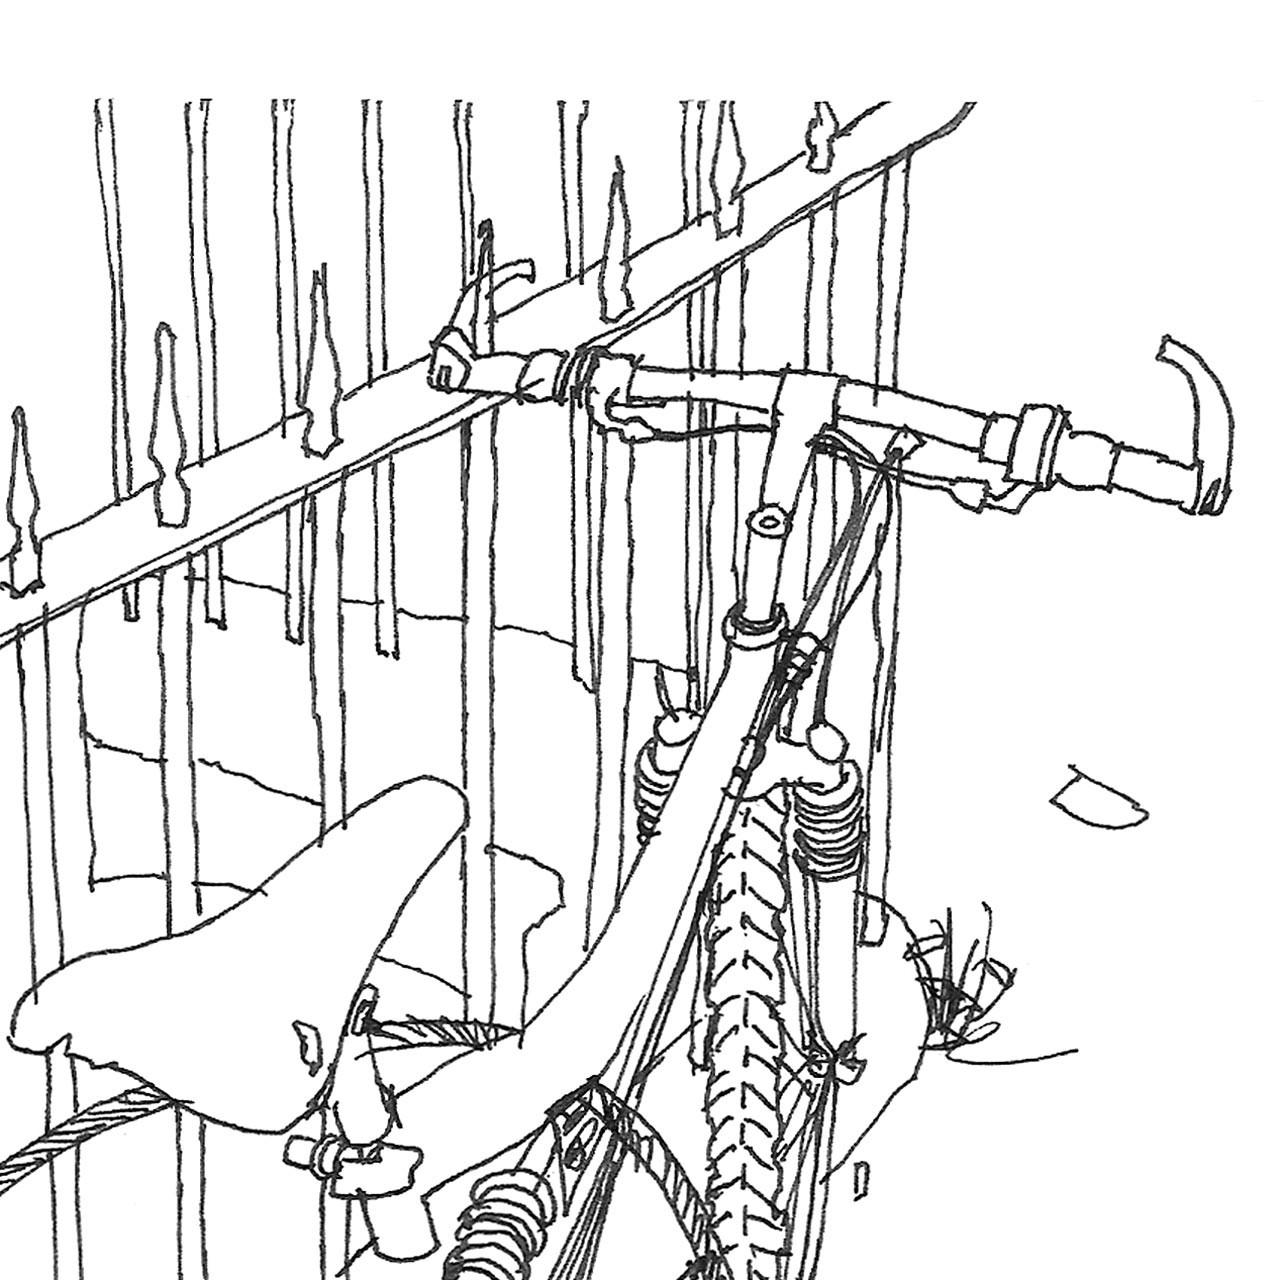 Close-up of 'By the Railings' Art Print (ink drawing by David Cobley) from The Printed Home